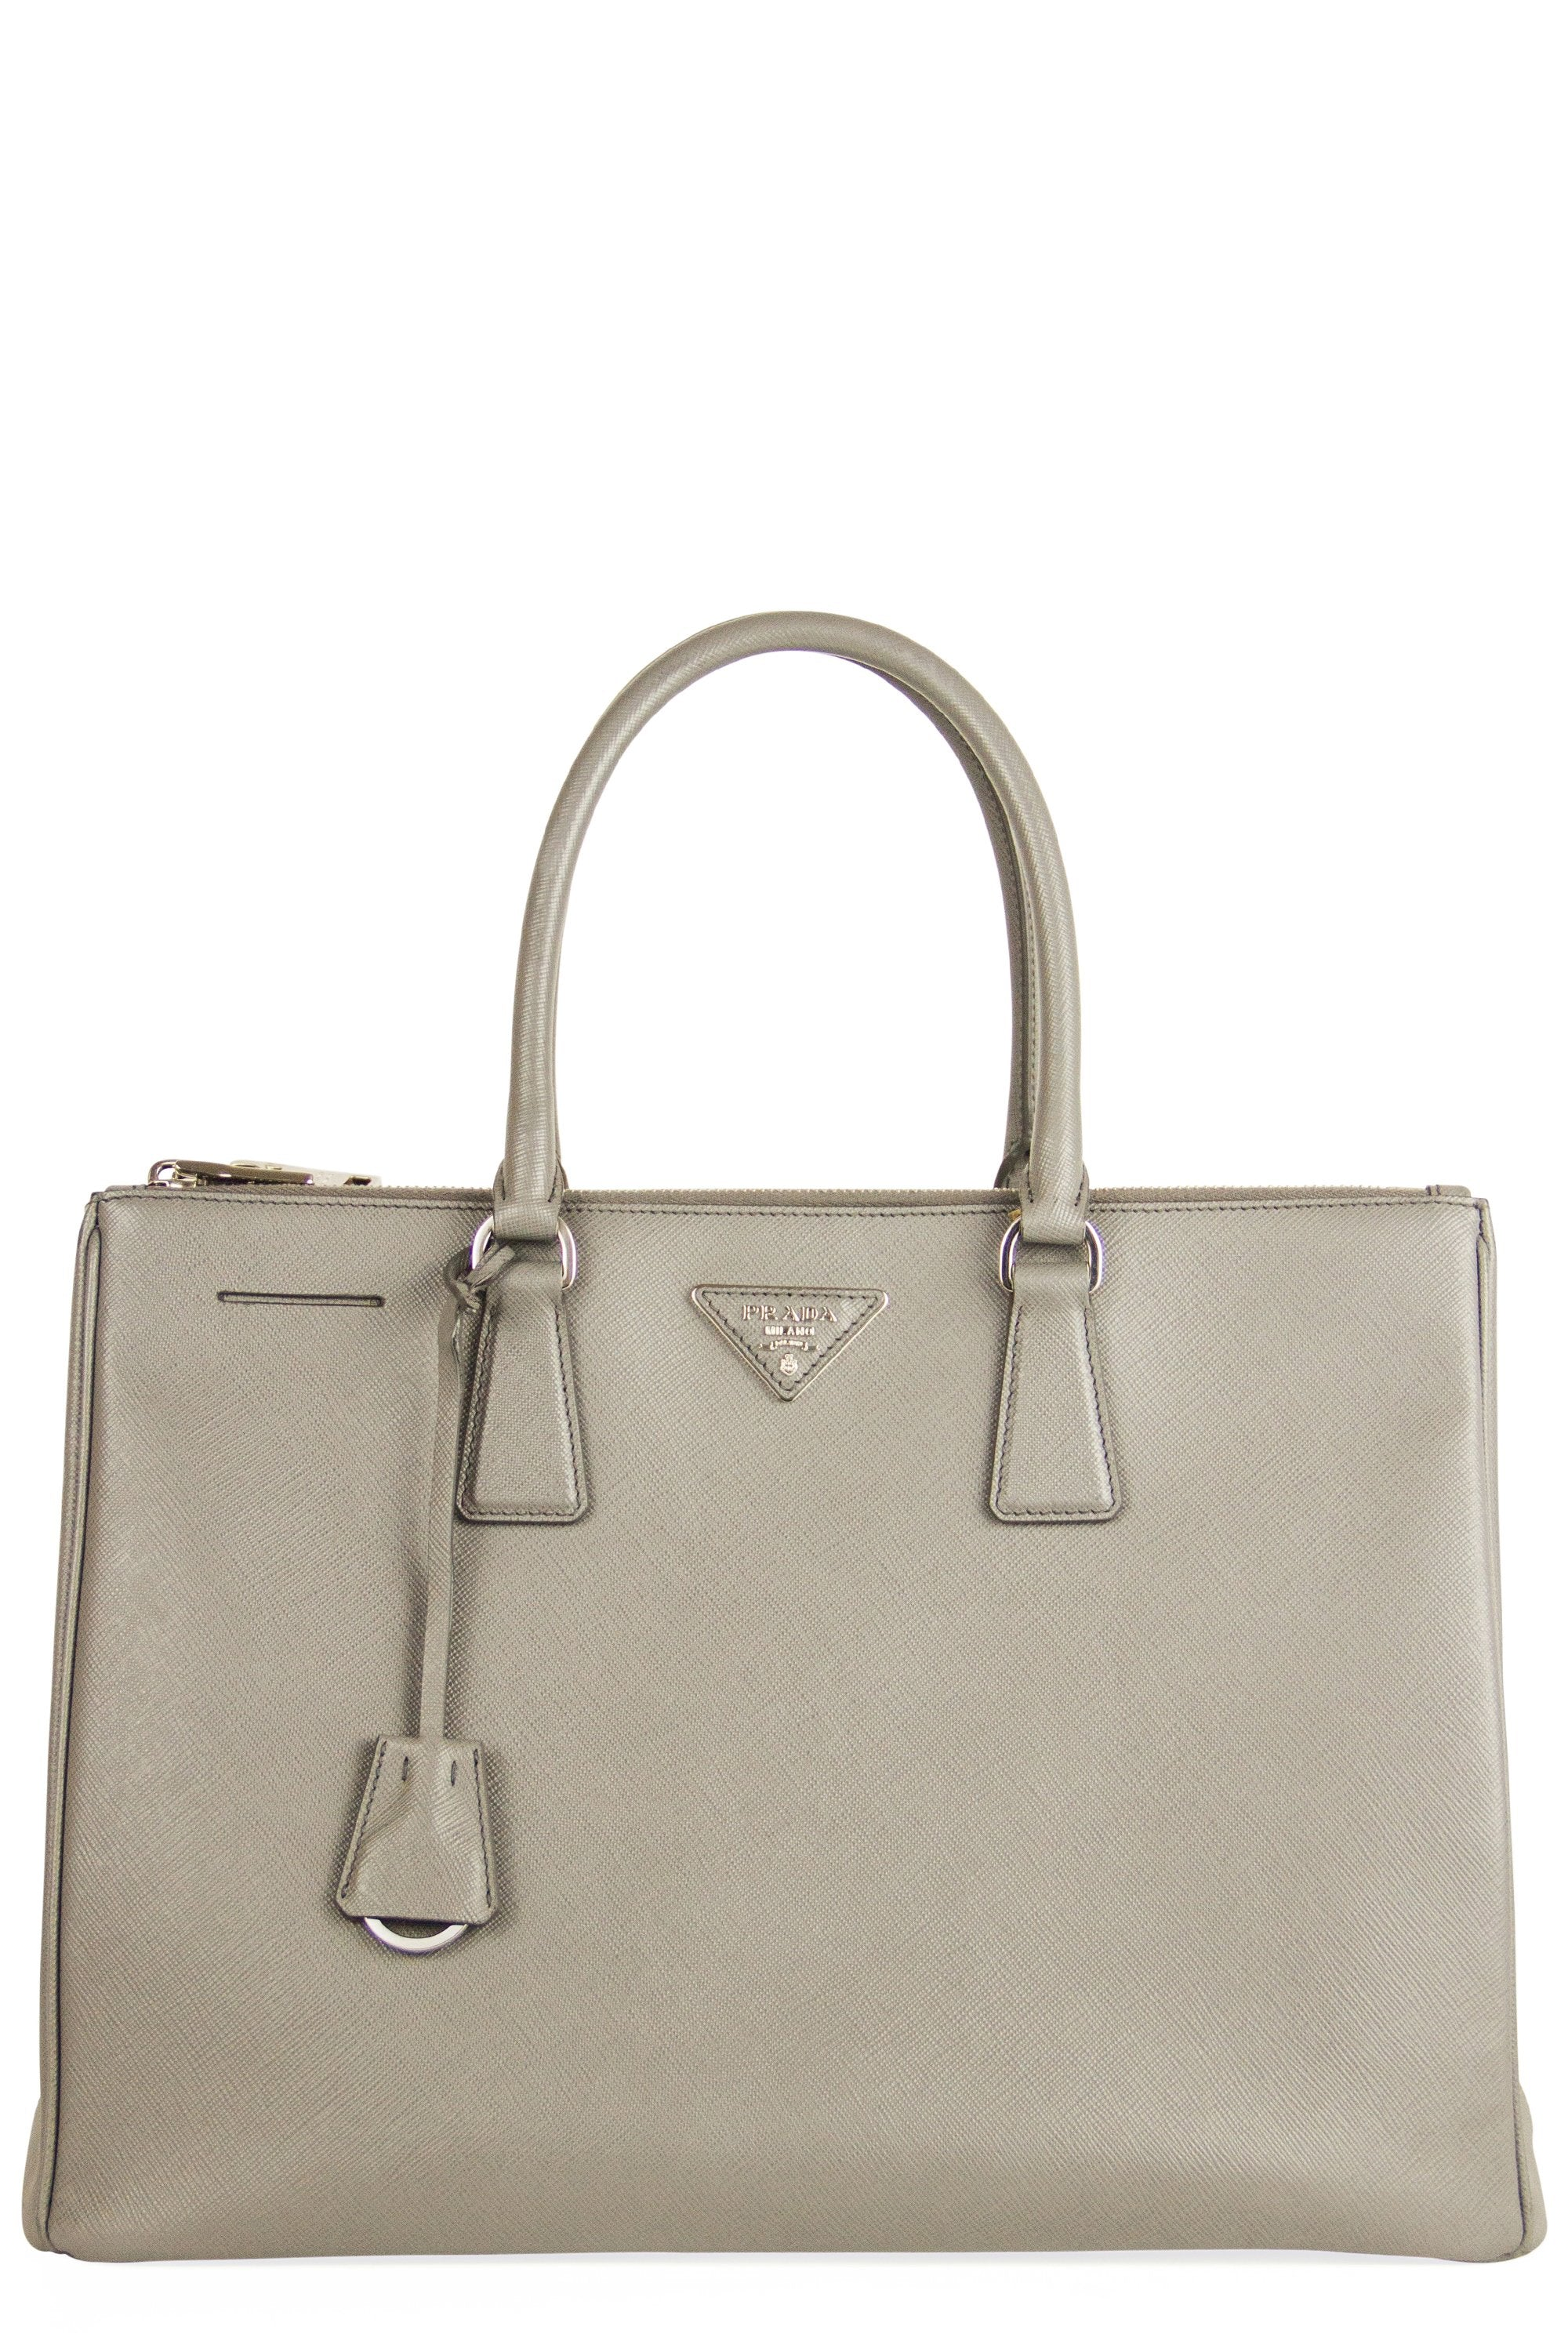 Prada Tote Galleria Saffiano Leather